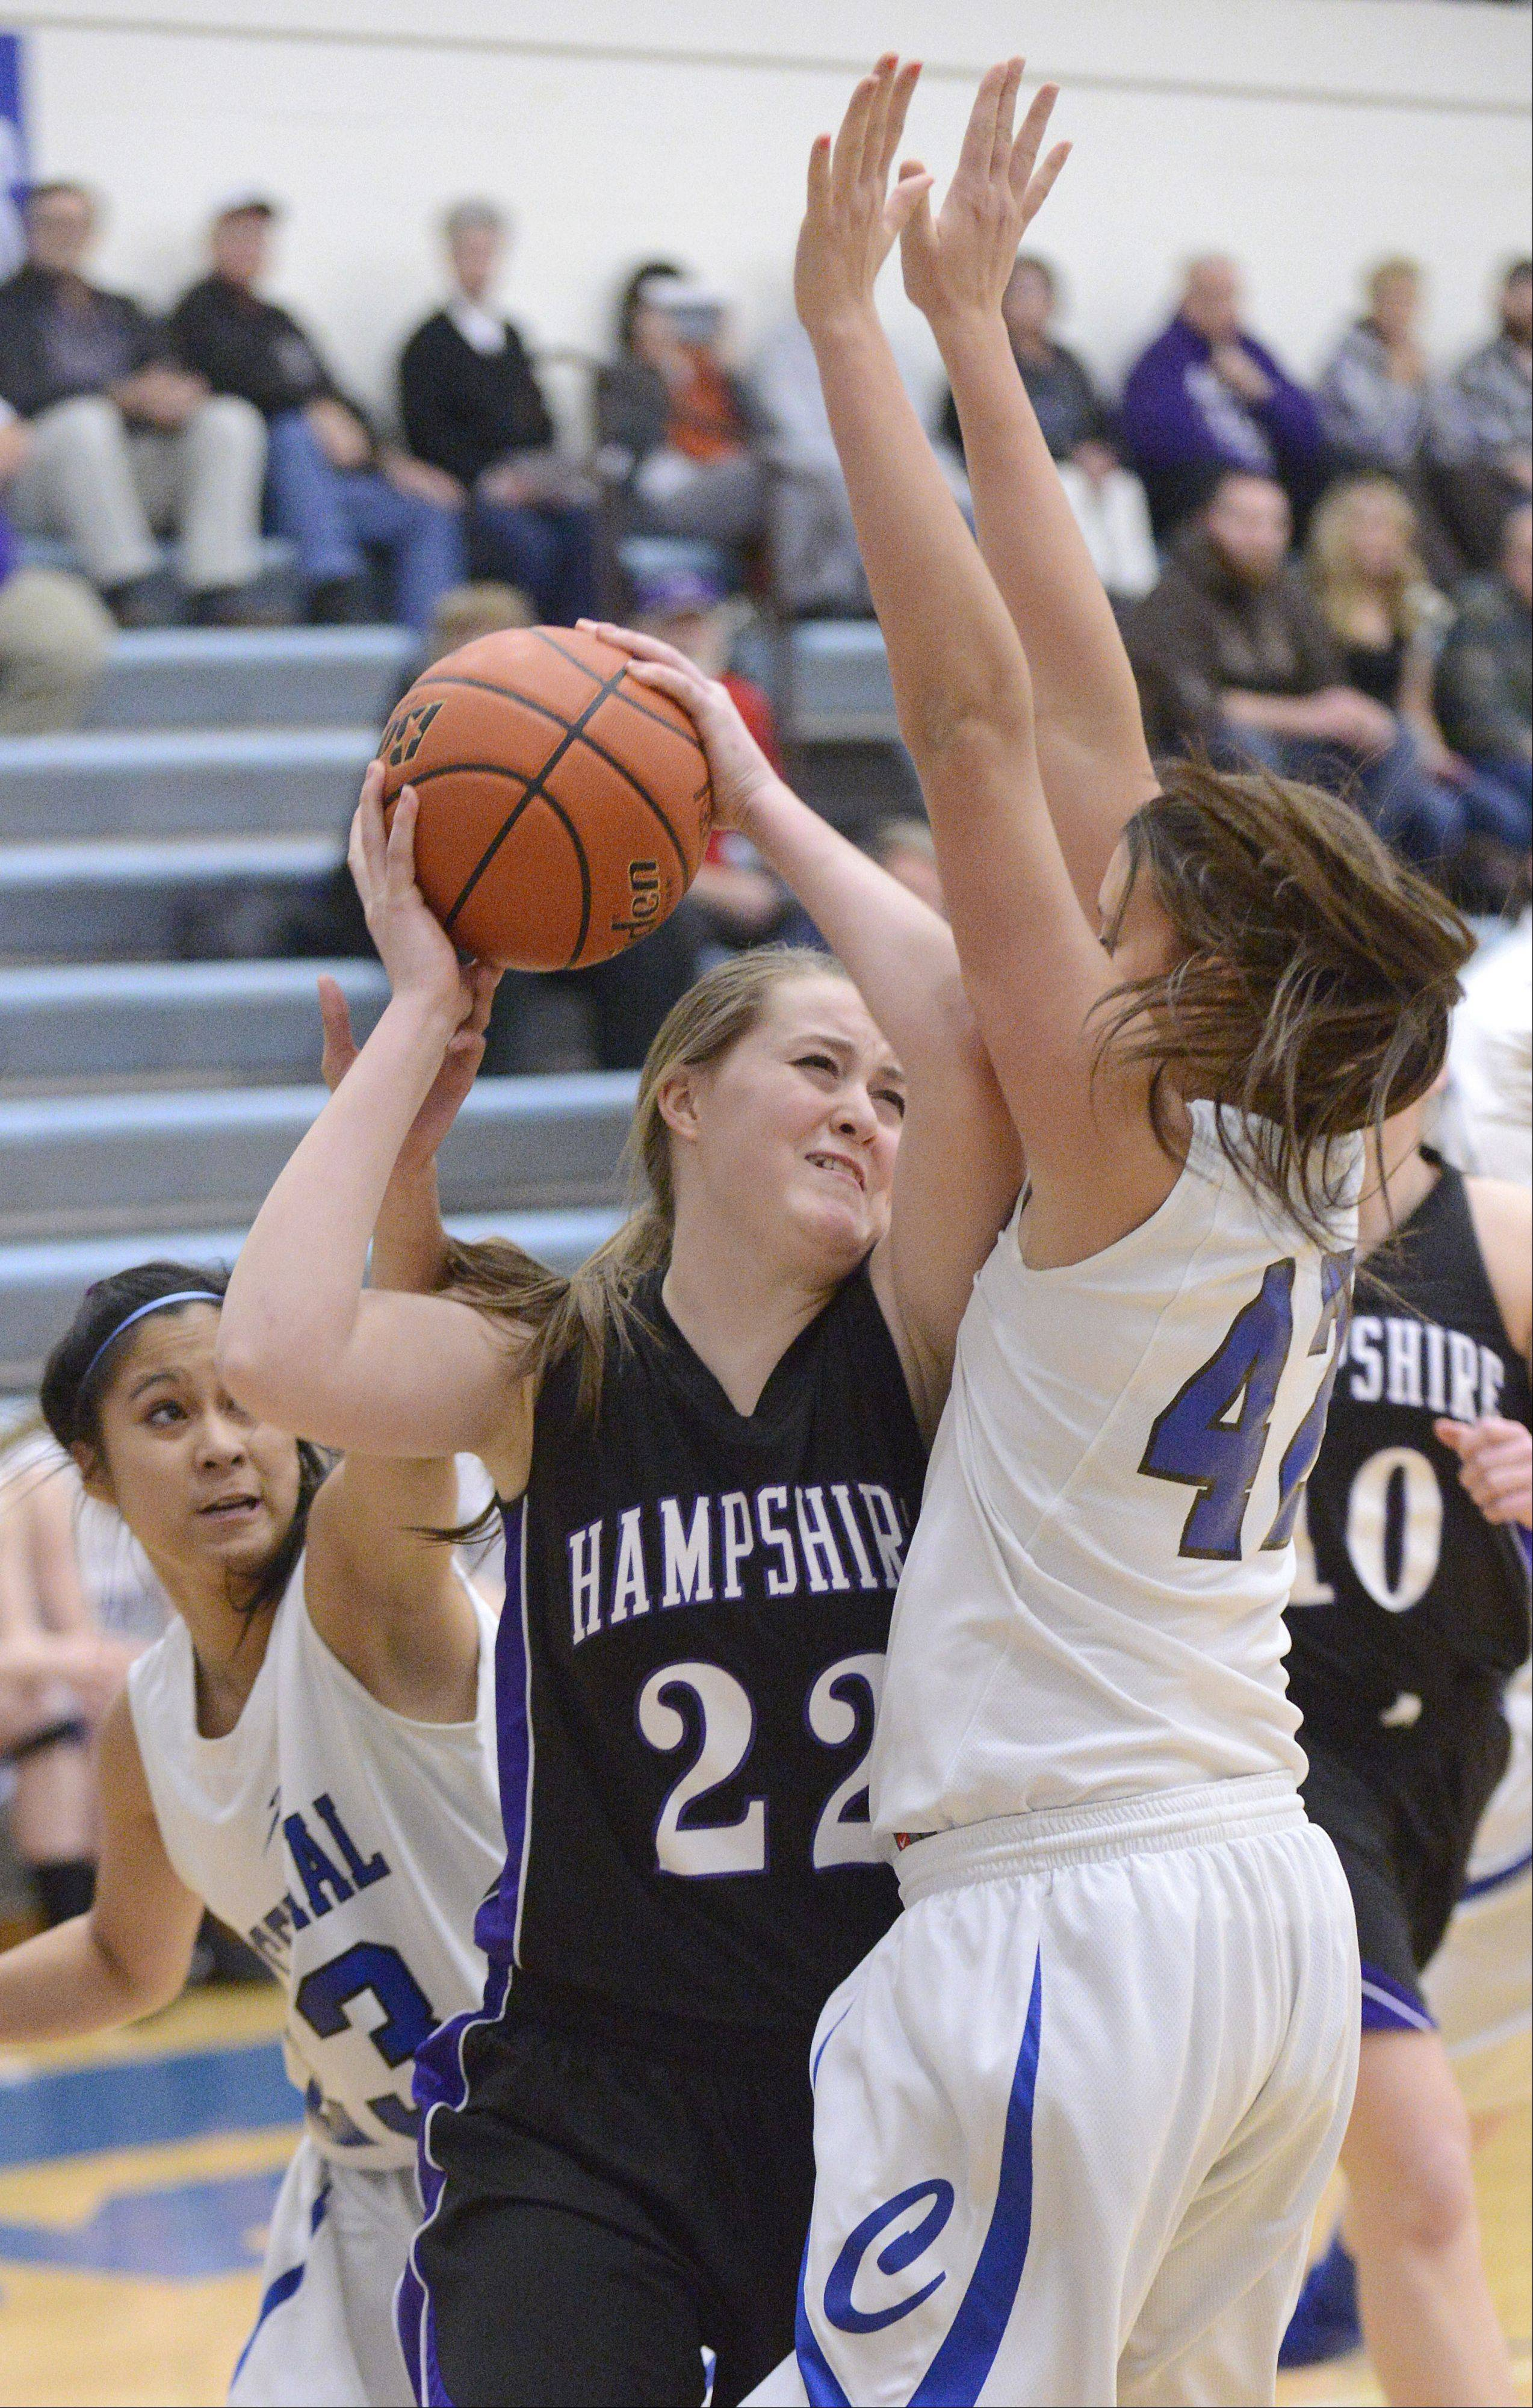 Hampshire's Emma Benoit is smothered by Burlington Central's Camille Delacruz and Alison Colby in the first quarter.